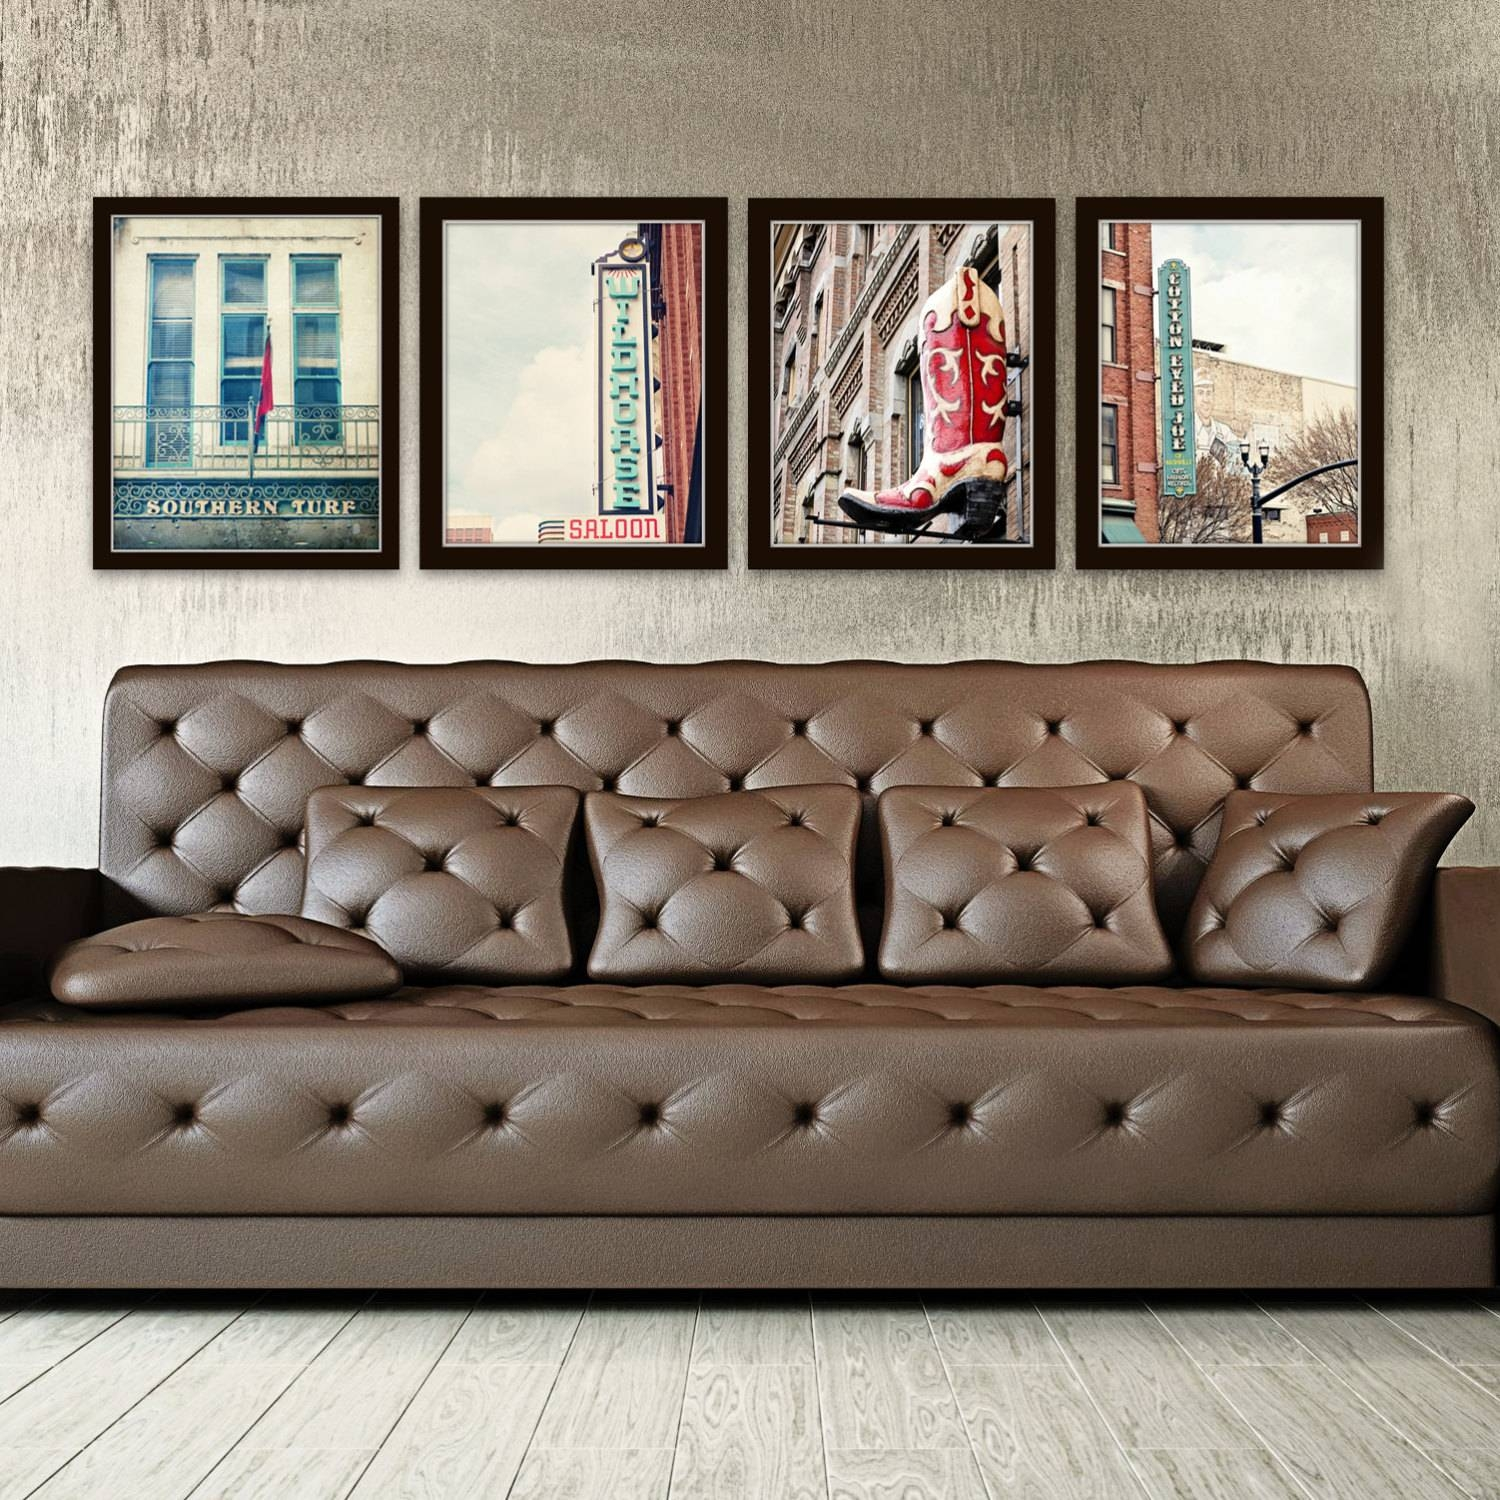 Nashville Wall Art Industrial Decor City Photography Set Of 4 For Recent Vintage Industrial Wall Art (View 10 of 20)